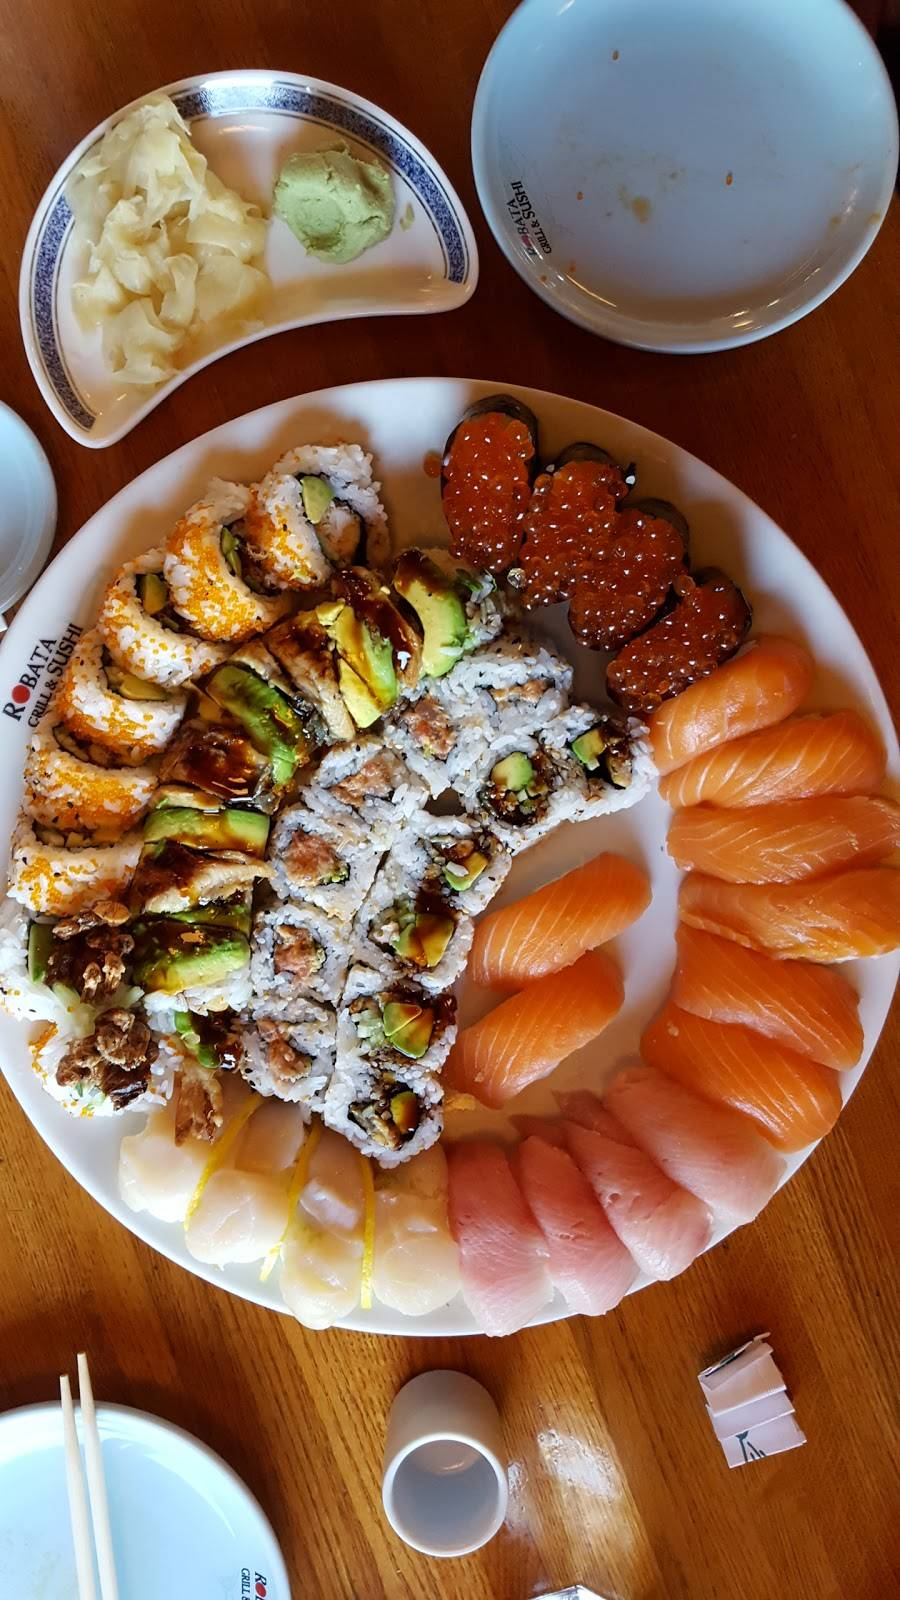 Robata Grill & Sushi | restaurant | 591 Redwood Hwy, Mill Valley, CA 94941, USA | 4153818400 OR +1 415-381-8400